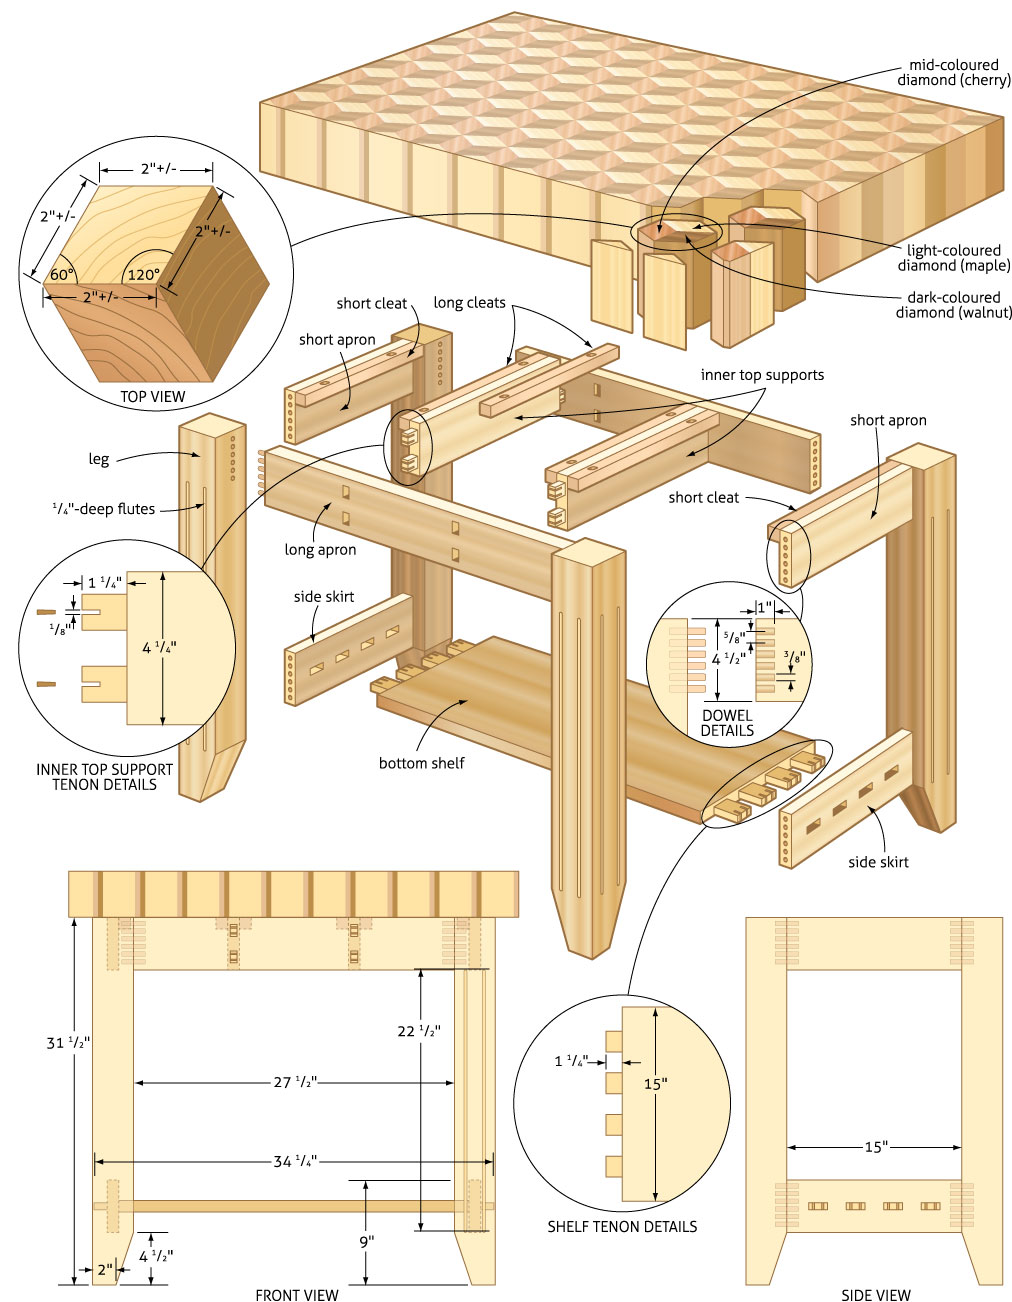 pdf diy small shelf woodworking plans download solid wood